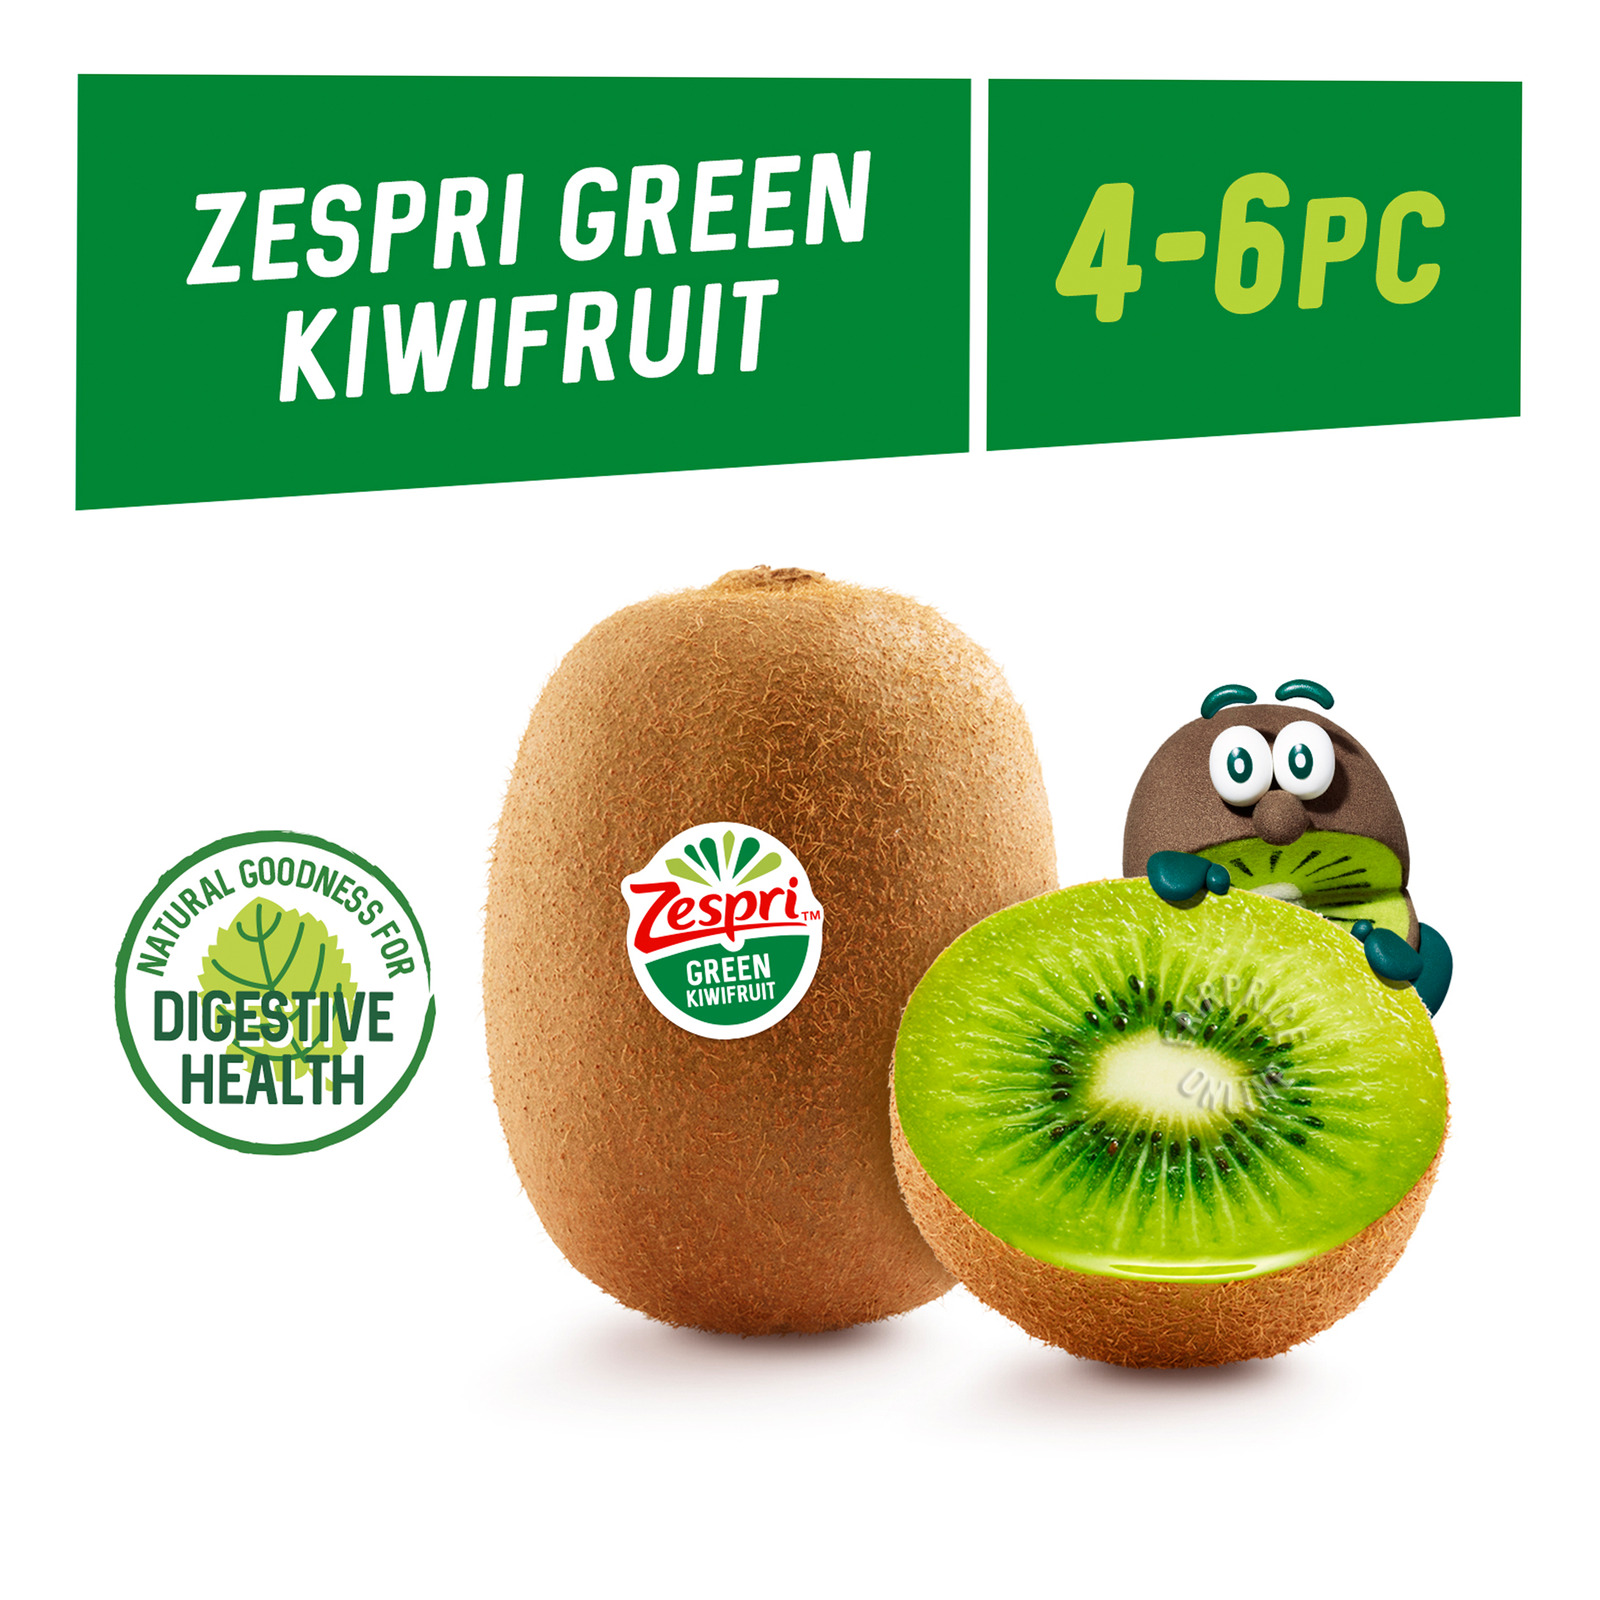 Zespri New Zealand Kiwifruit - Green